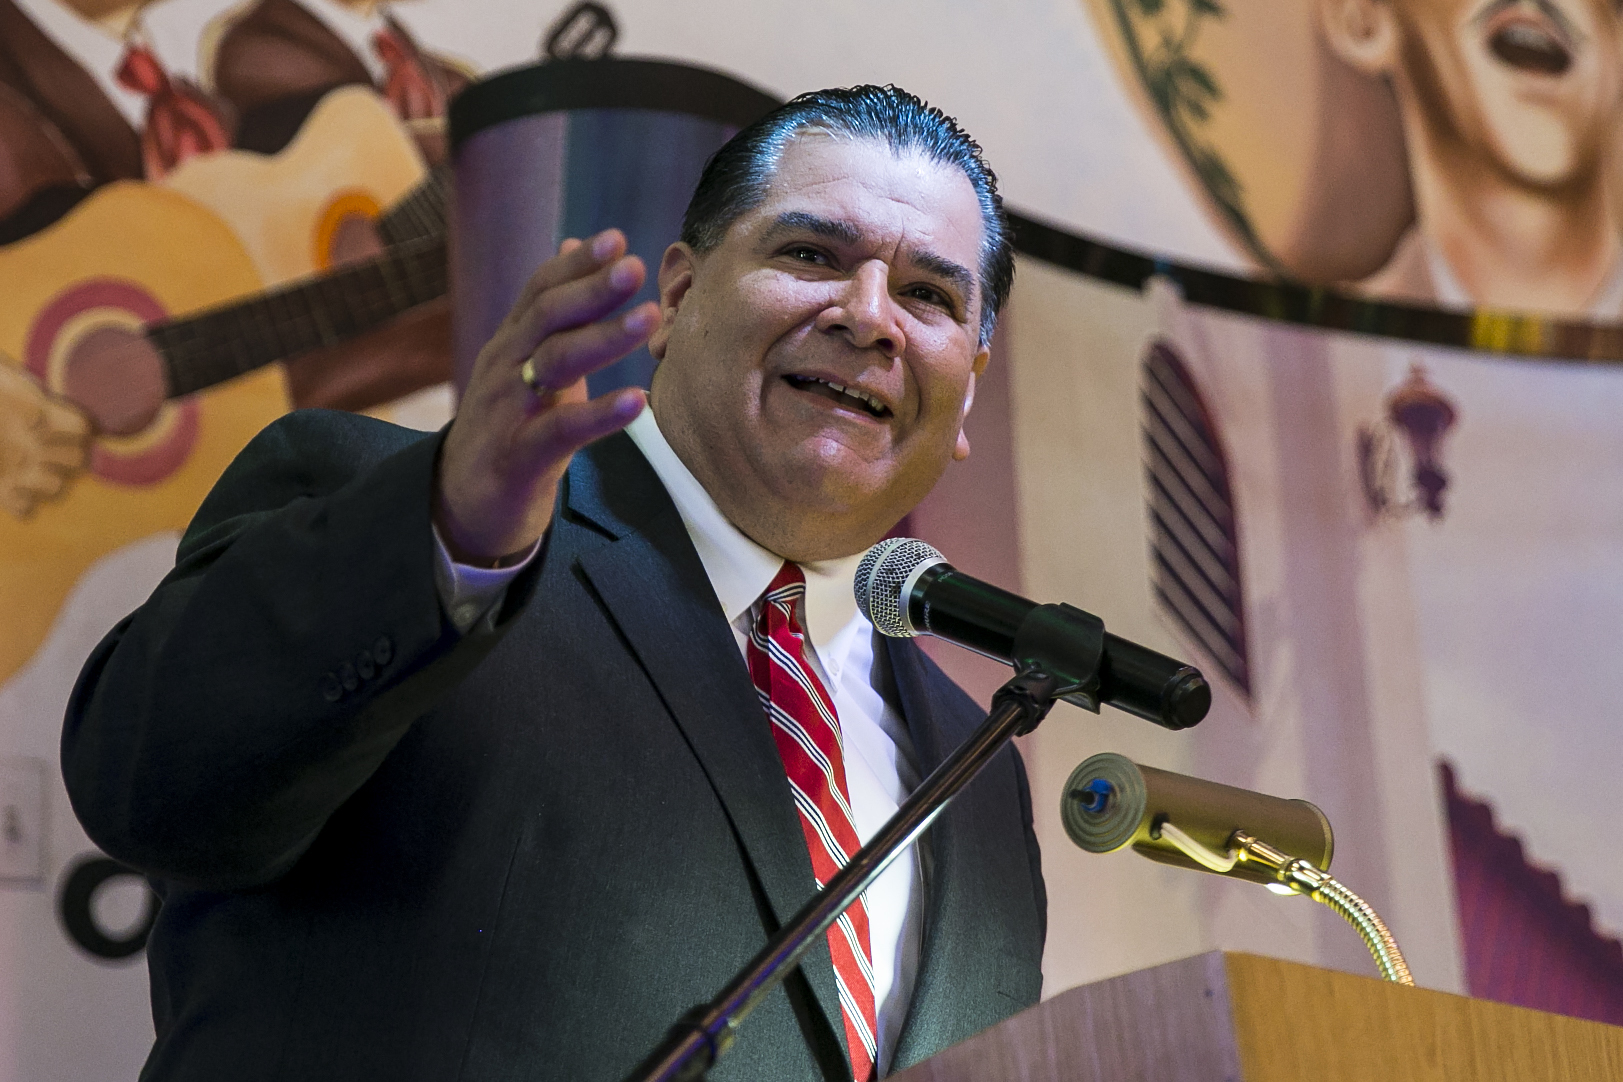 Illinois state Sen. Martin Sandoval has issued an apology after a mock assassination of President Donald Trump was staged at his fundraiser.